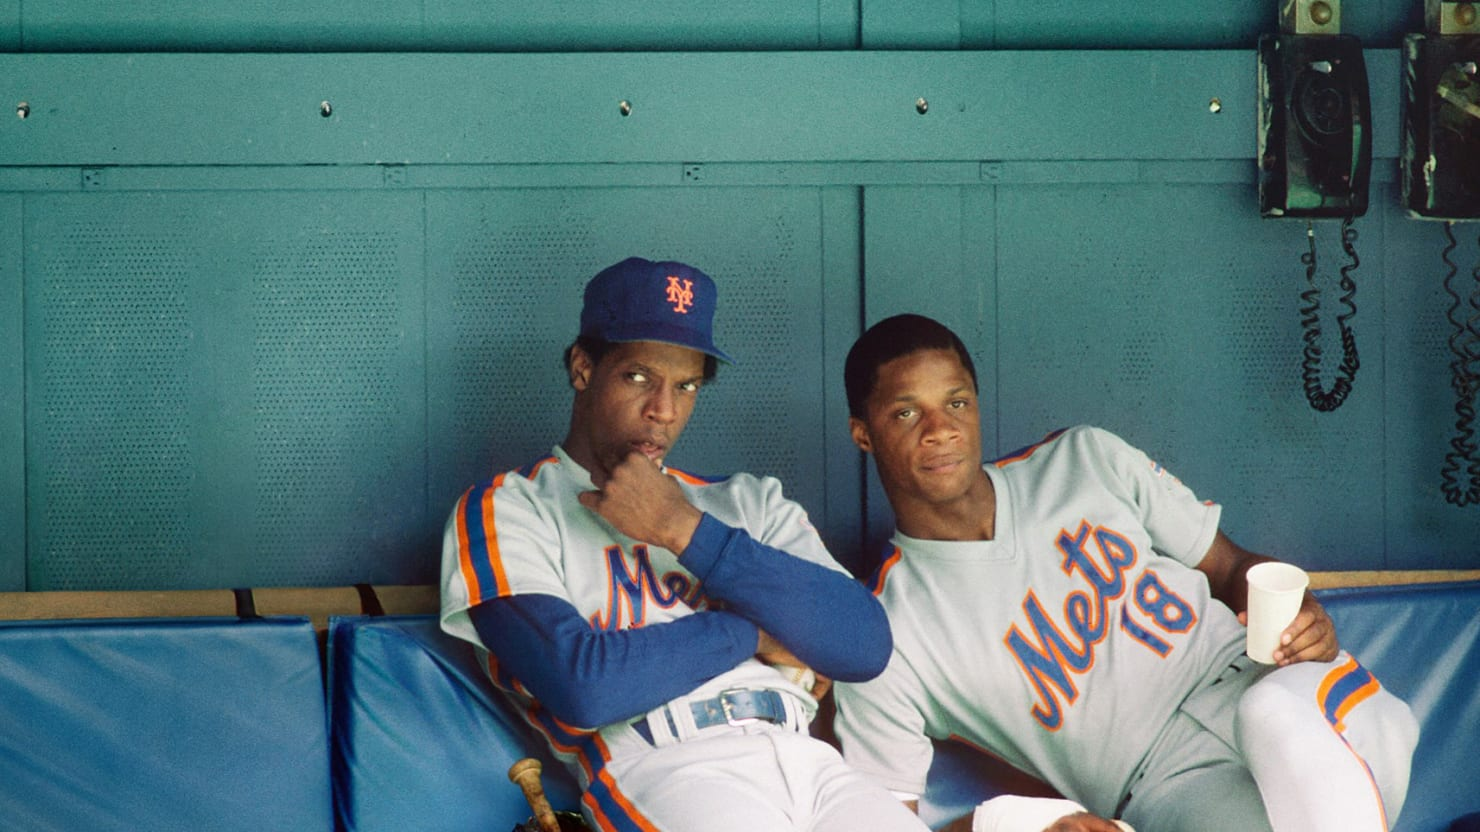 Rise V Auto >> The Tragedy of 'Doc & Darryl,' Two Baseball Stars Brought ...